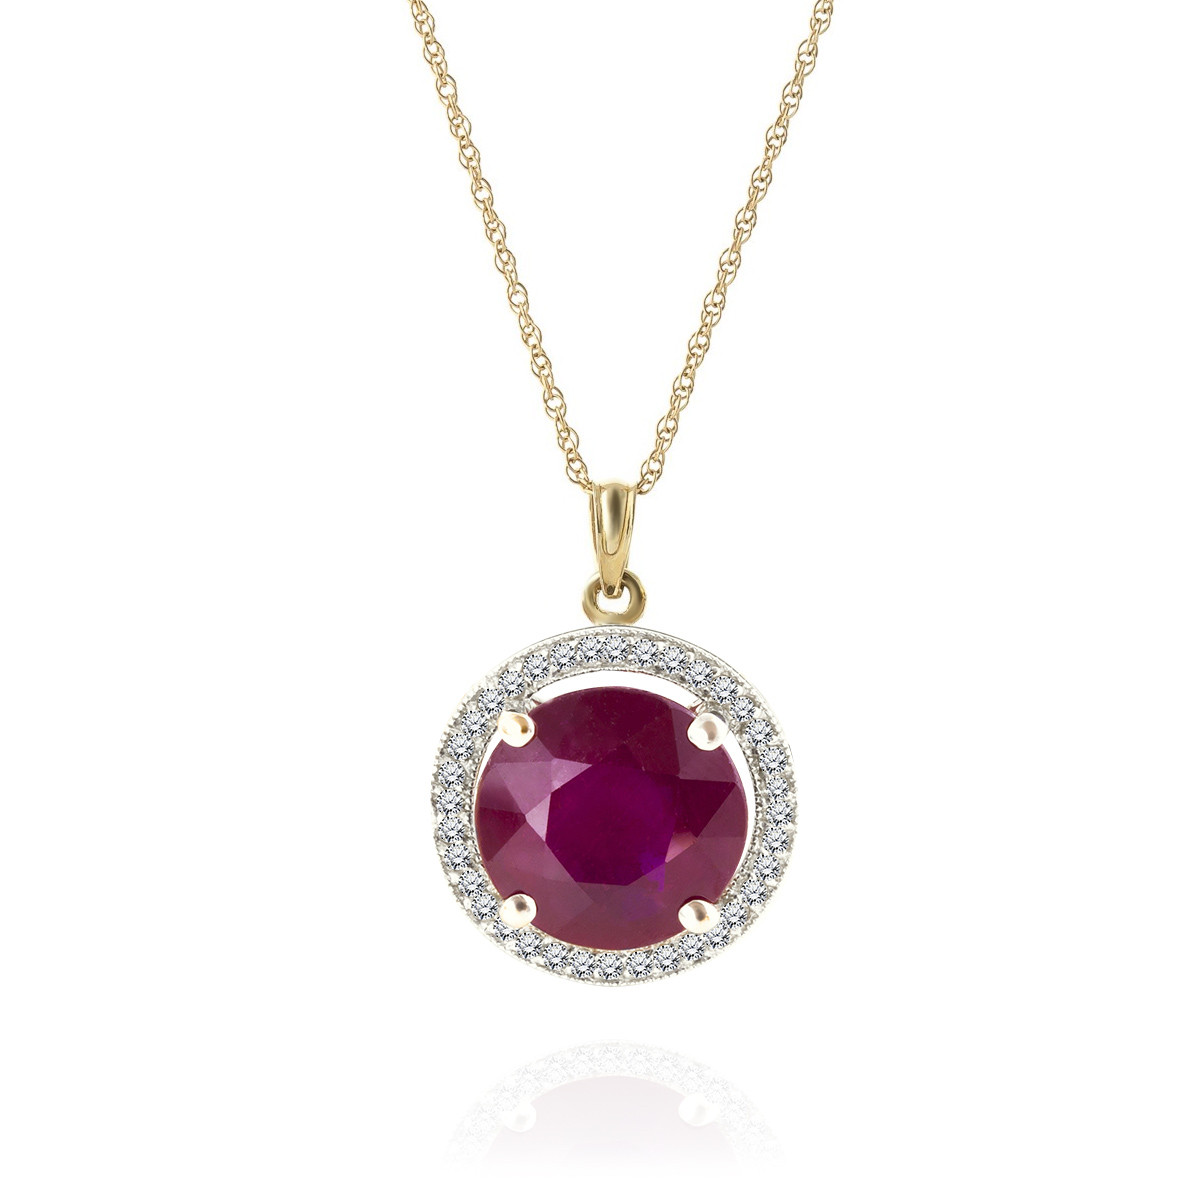 Ruby & Diamond Halo Pendant Necklace in 9ct Gold